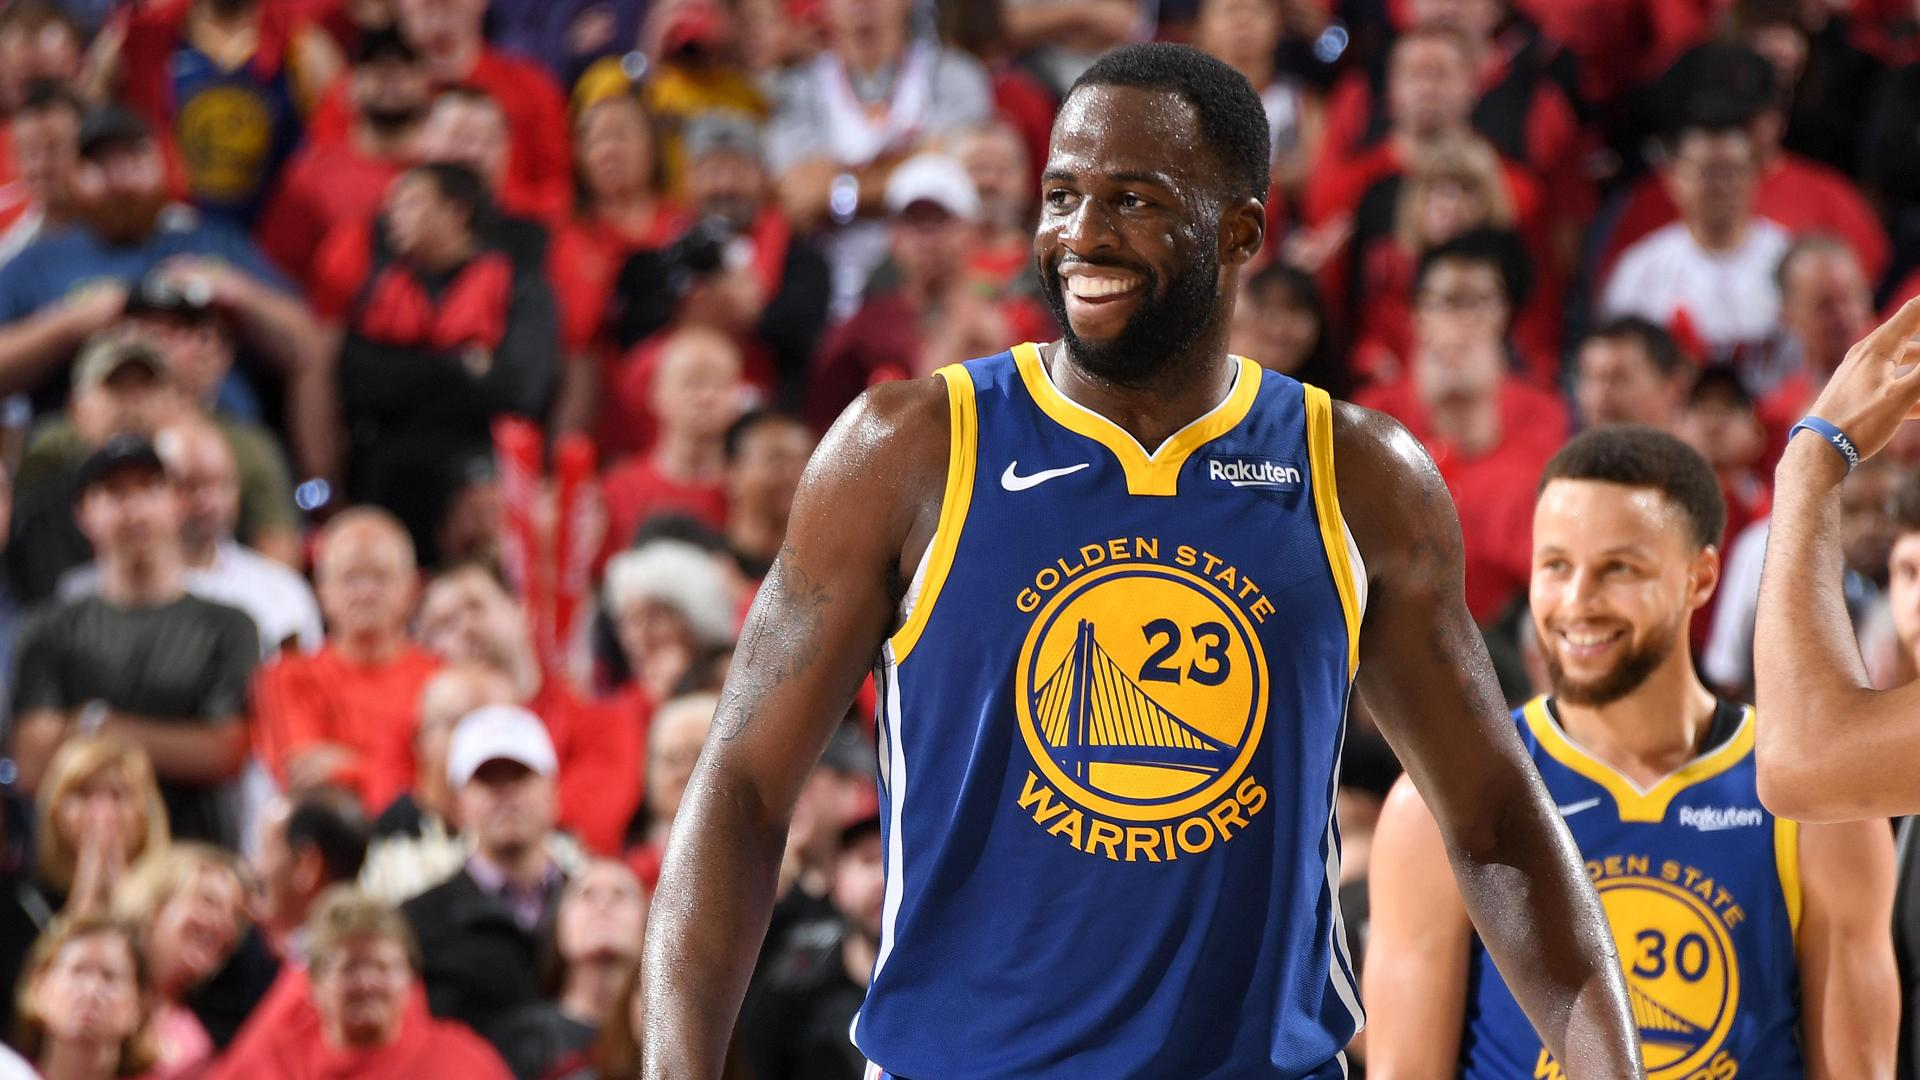 Woj: Draymond Green is the heart and soul of Warriors